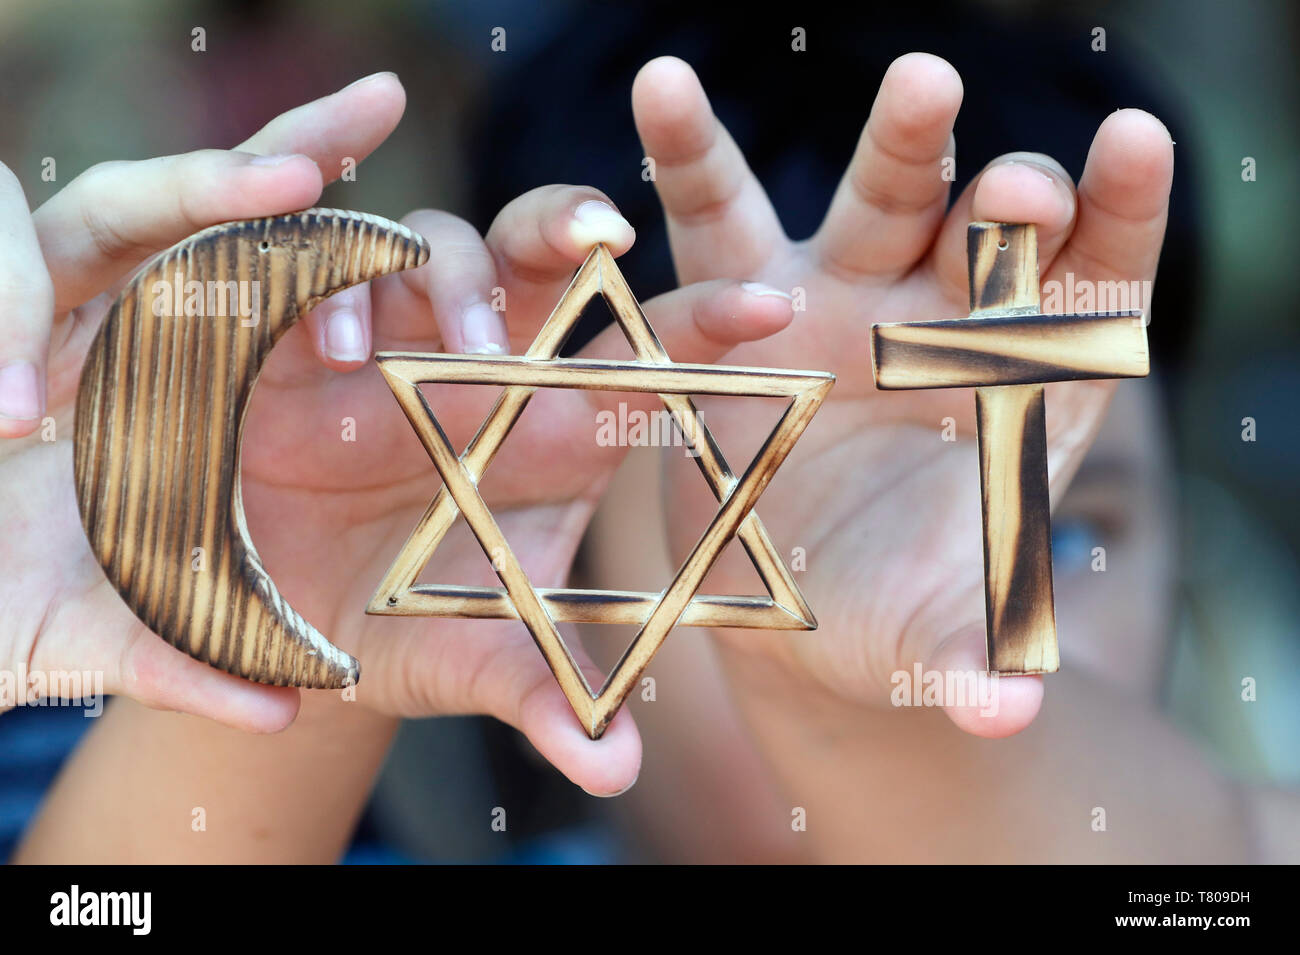 Christianity, Islam, Judaism, the three monotheistic religions with symbols of Jewish Star, Muslim Crescent and Christian Cross, Vietnam - Stock Image